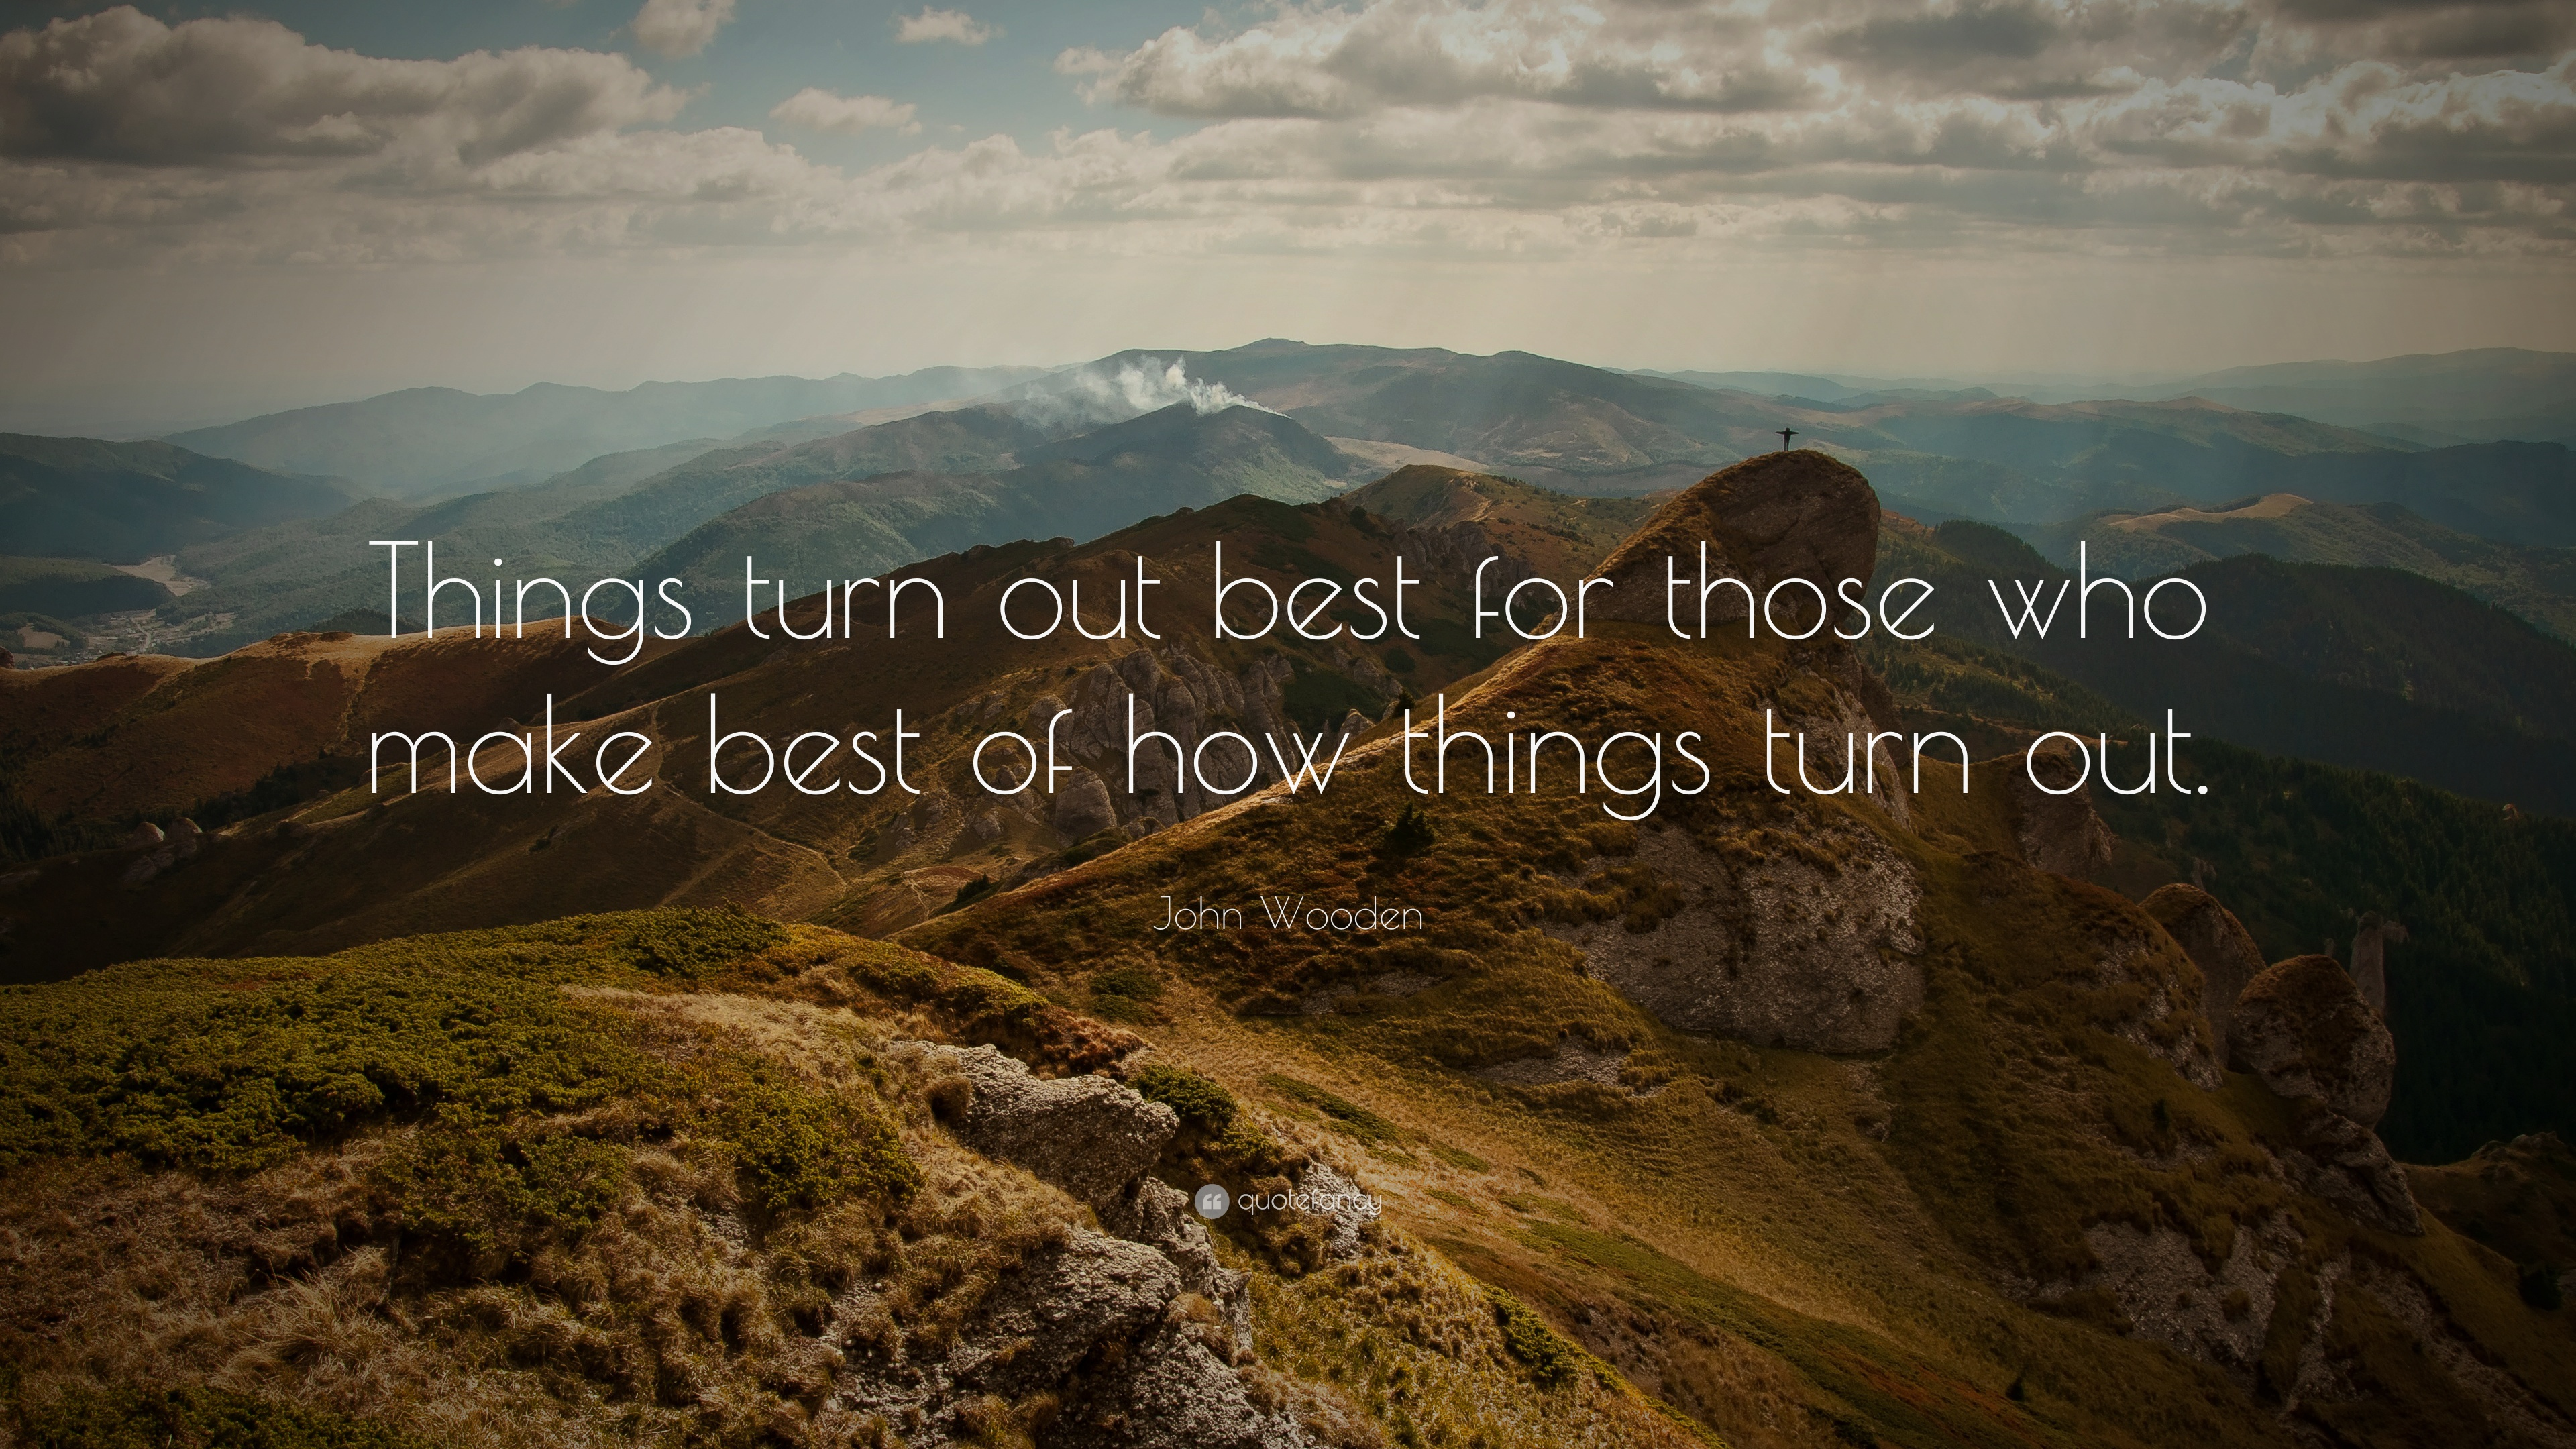 John Wooden Quote Things Turn Out Best For Those Who Make Best Of